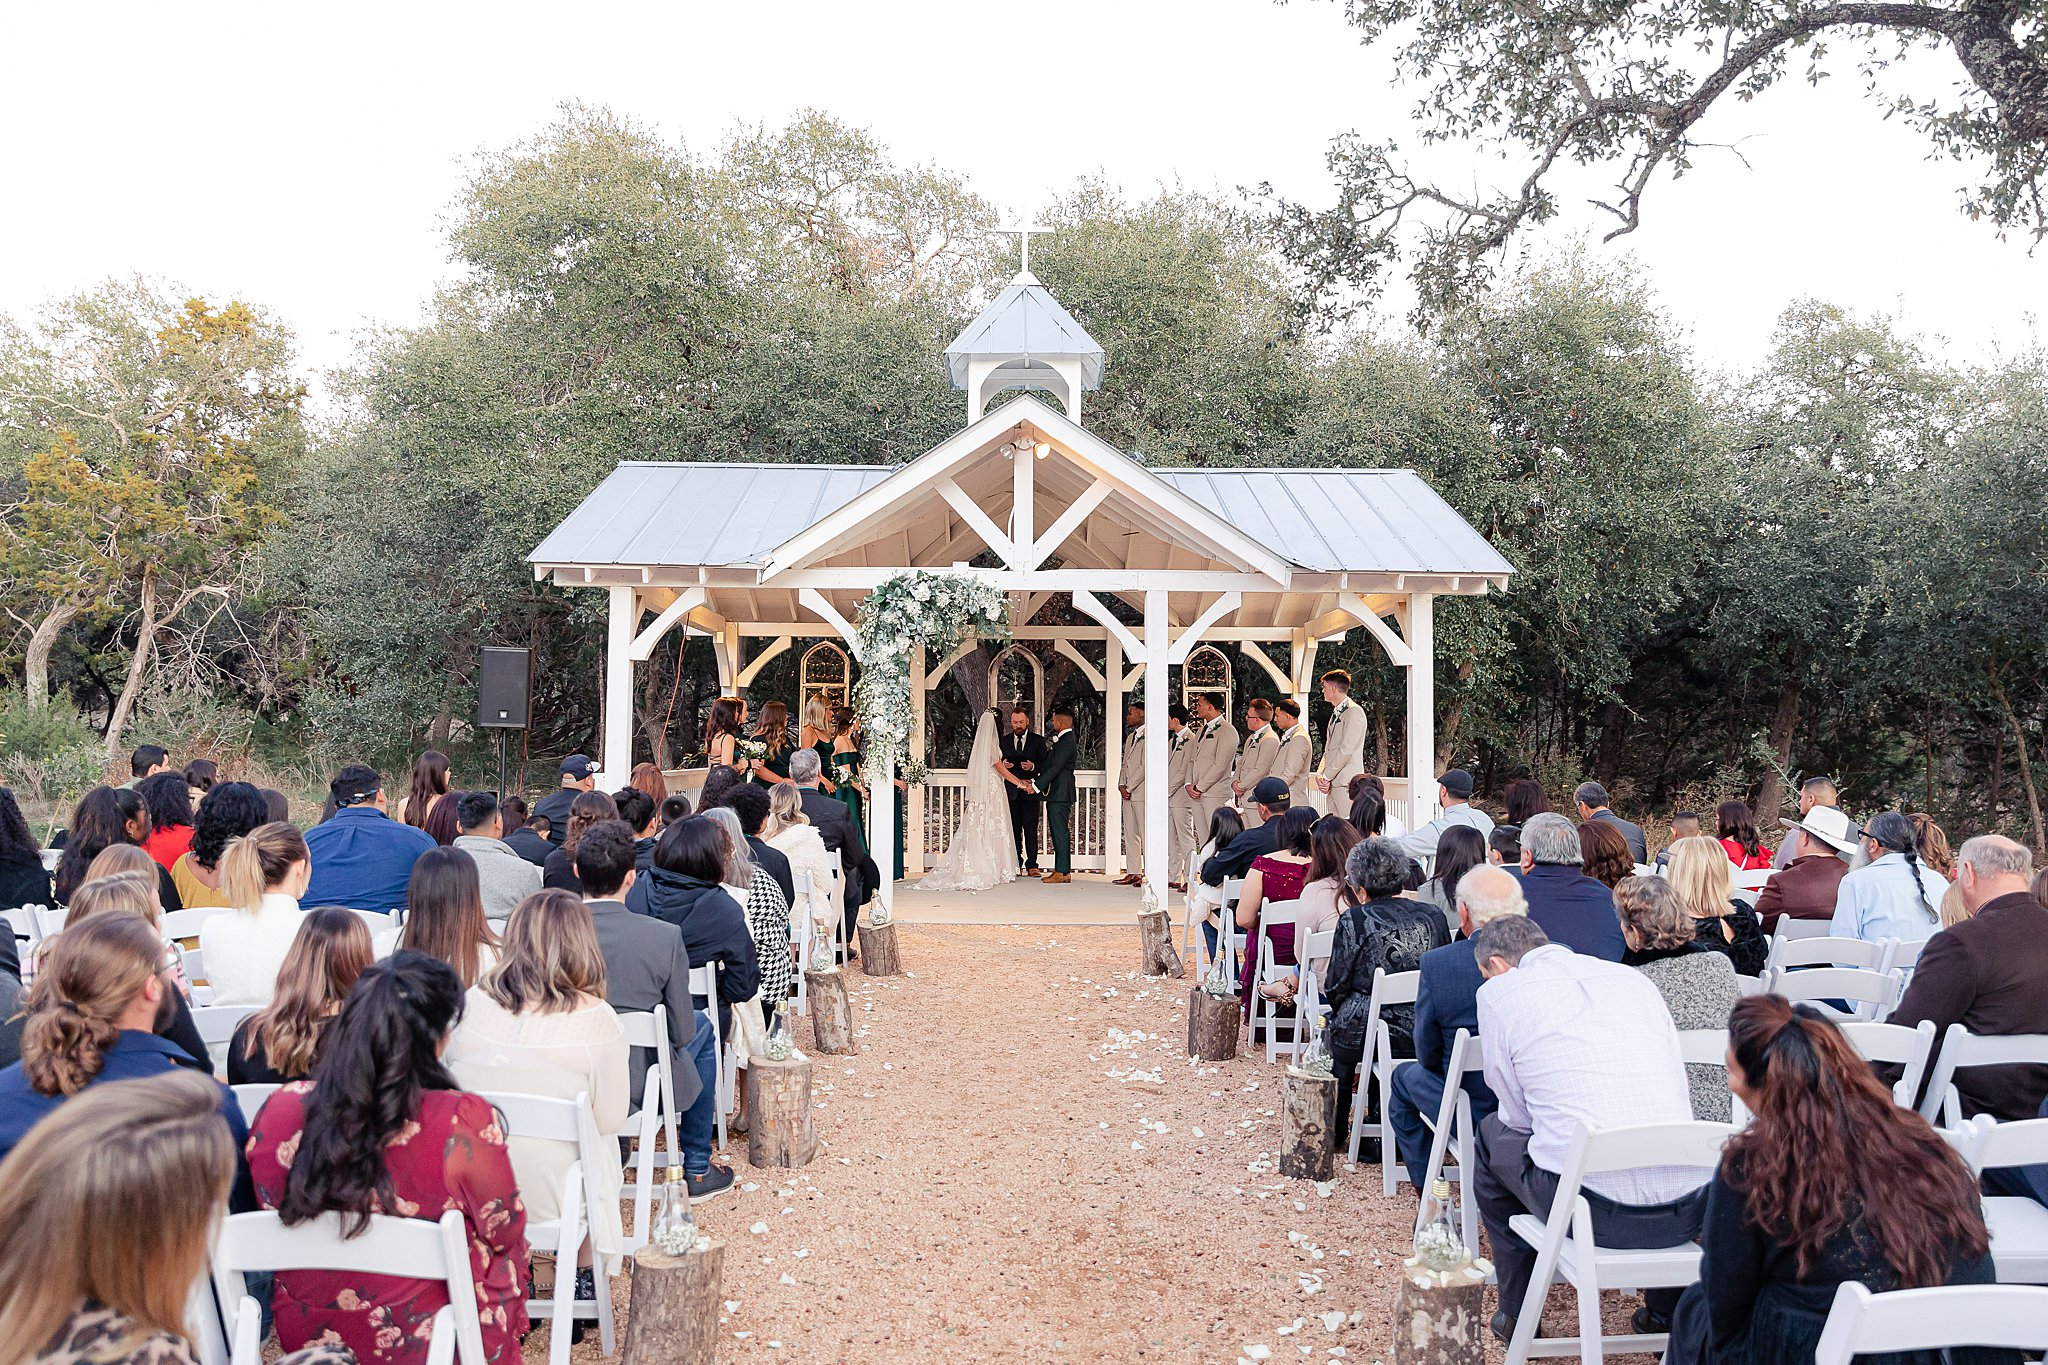 Carly-Barton-Photography-Texas-Wedding-Photographer-Western-Sky-Wedding-Event-Venue-Emerald-Green-Theme_0022.jpg